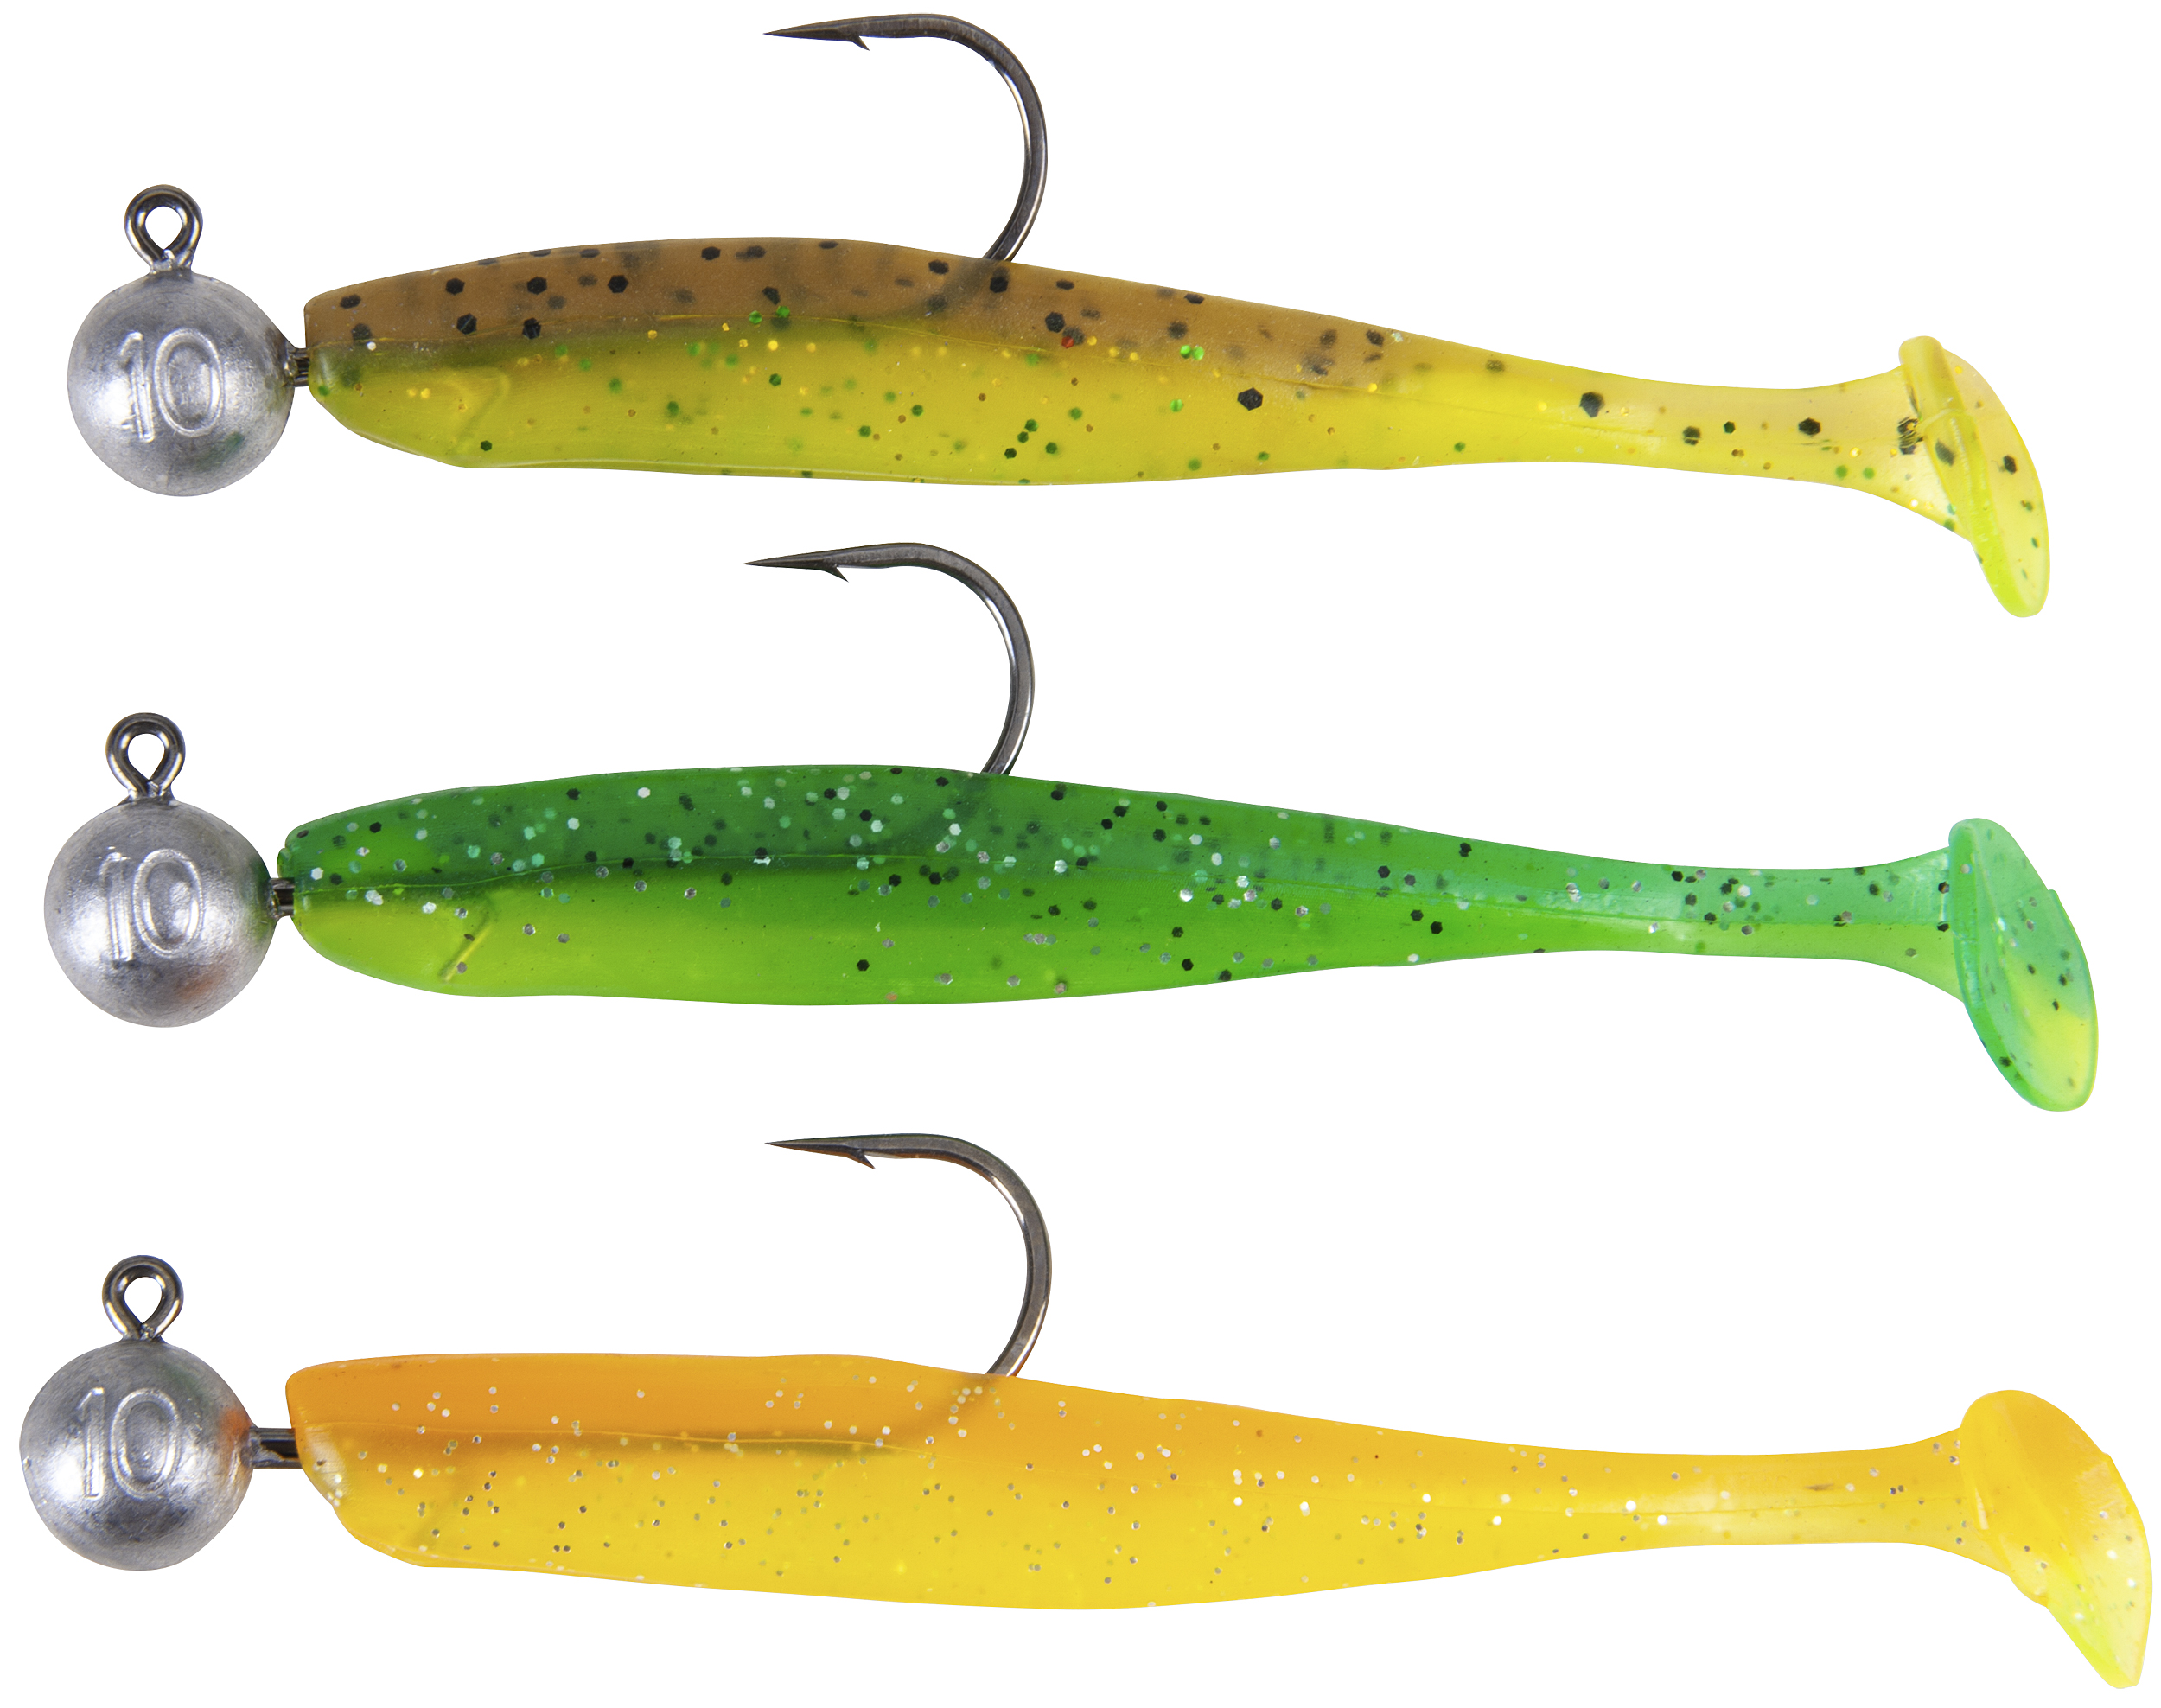 Iron Claw-Easy Shad P´n´P Farbe Mix 1 Länge ca. 10cm-1 - Gerlinger.de